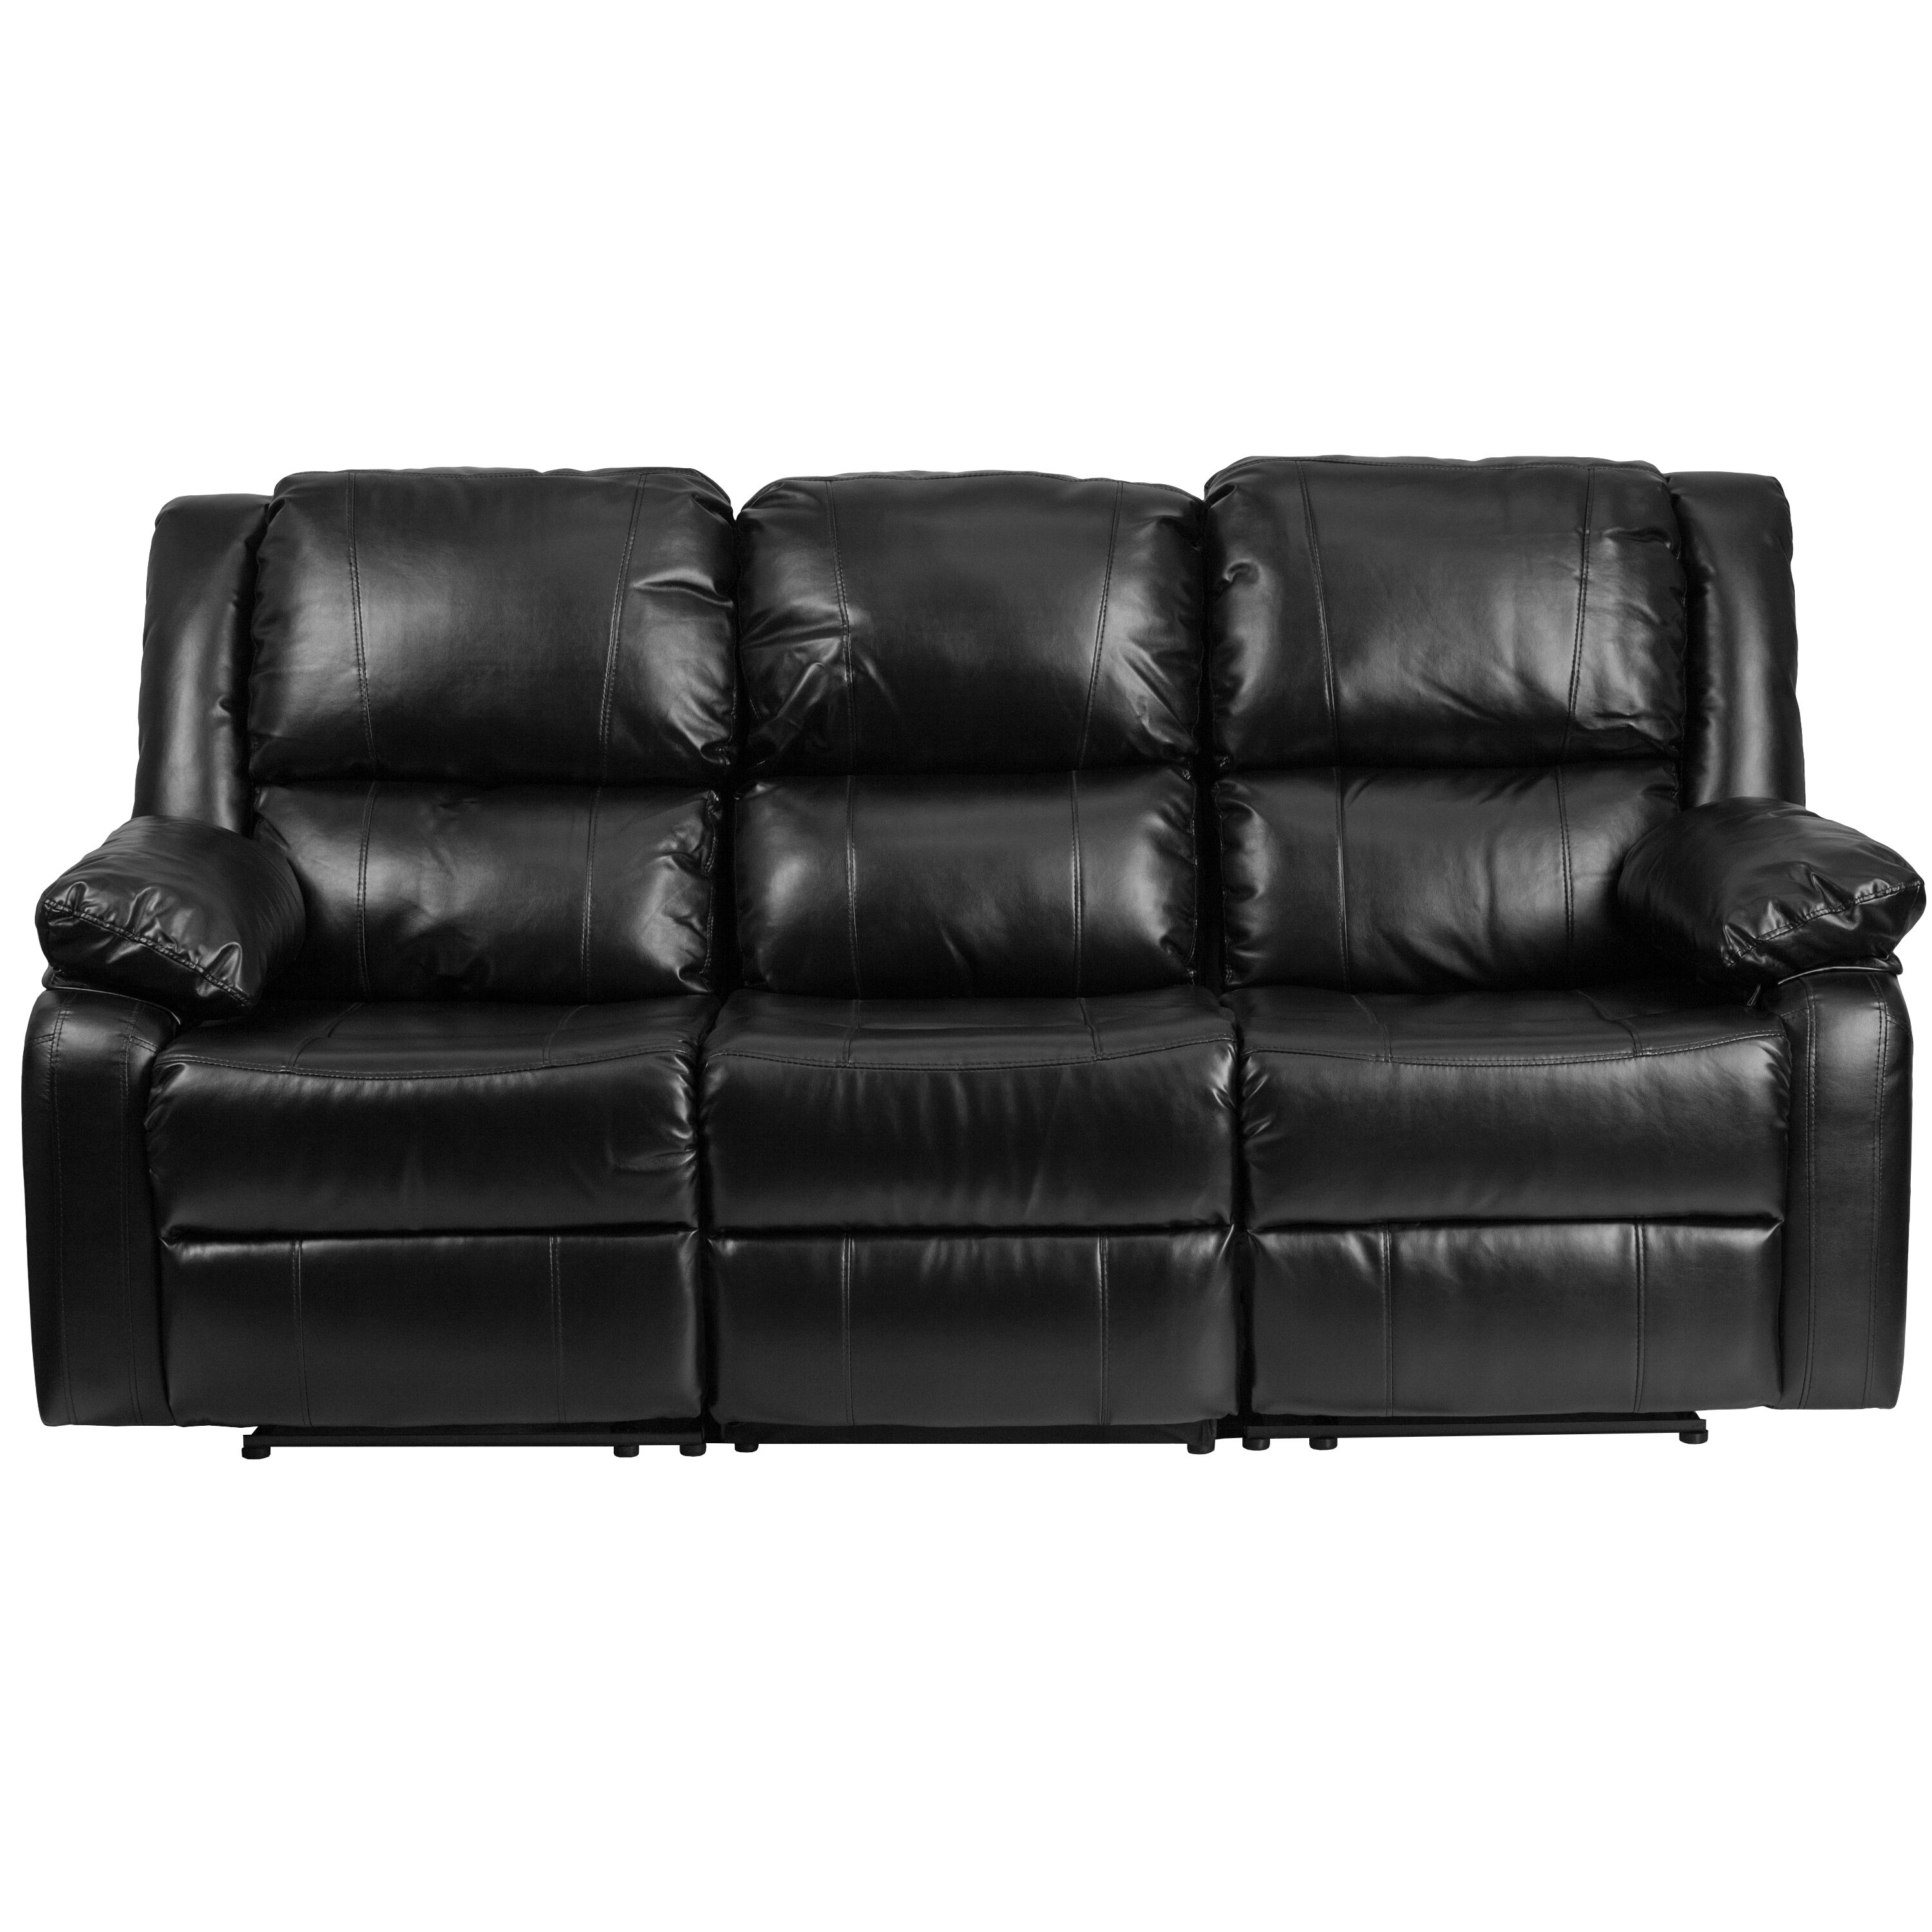 ... Our Harmony Series Black Leather Sofa With Two Built In Recliners Is On  Sale Now ...